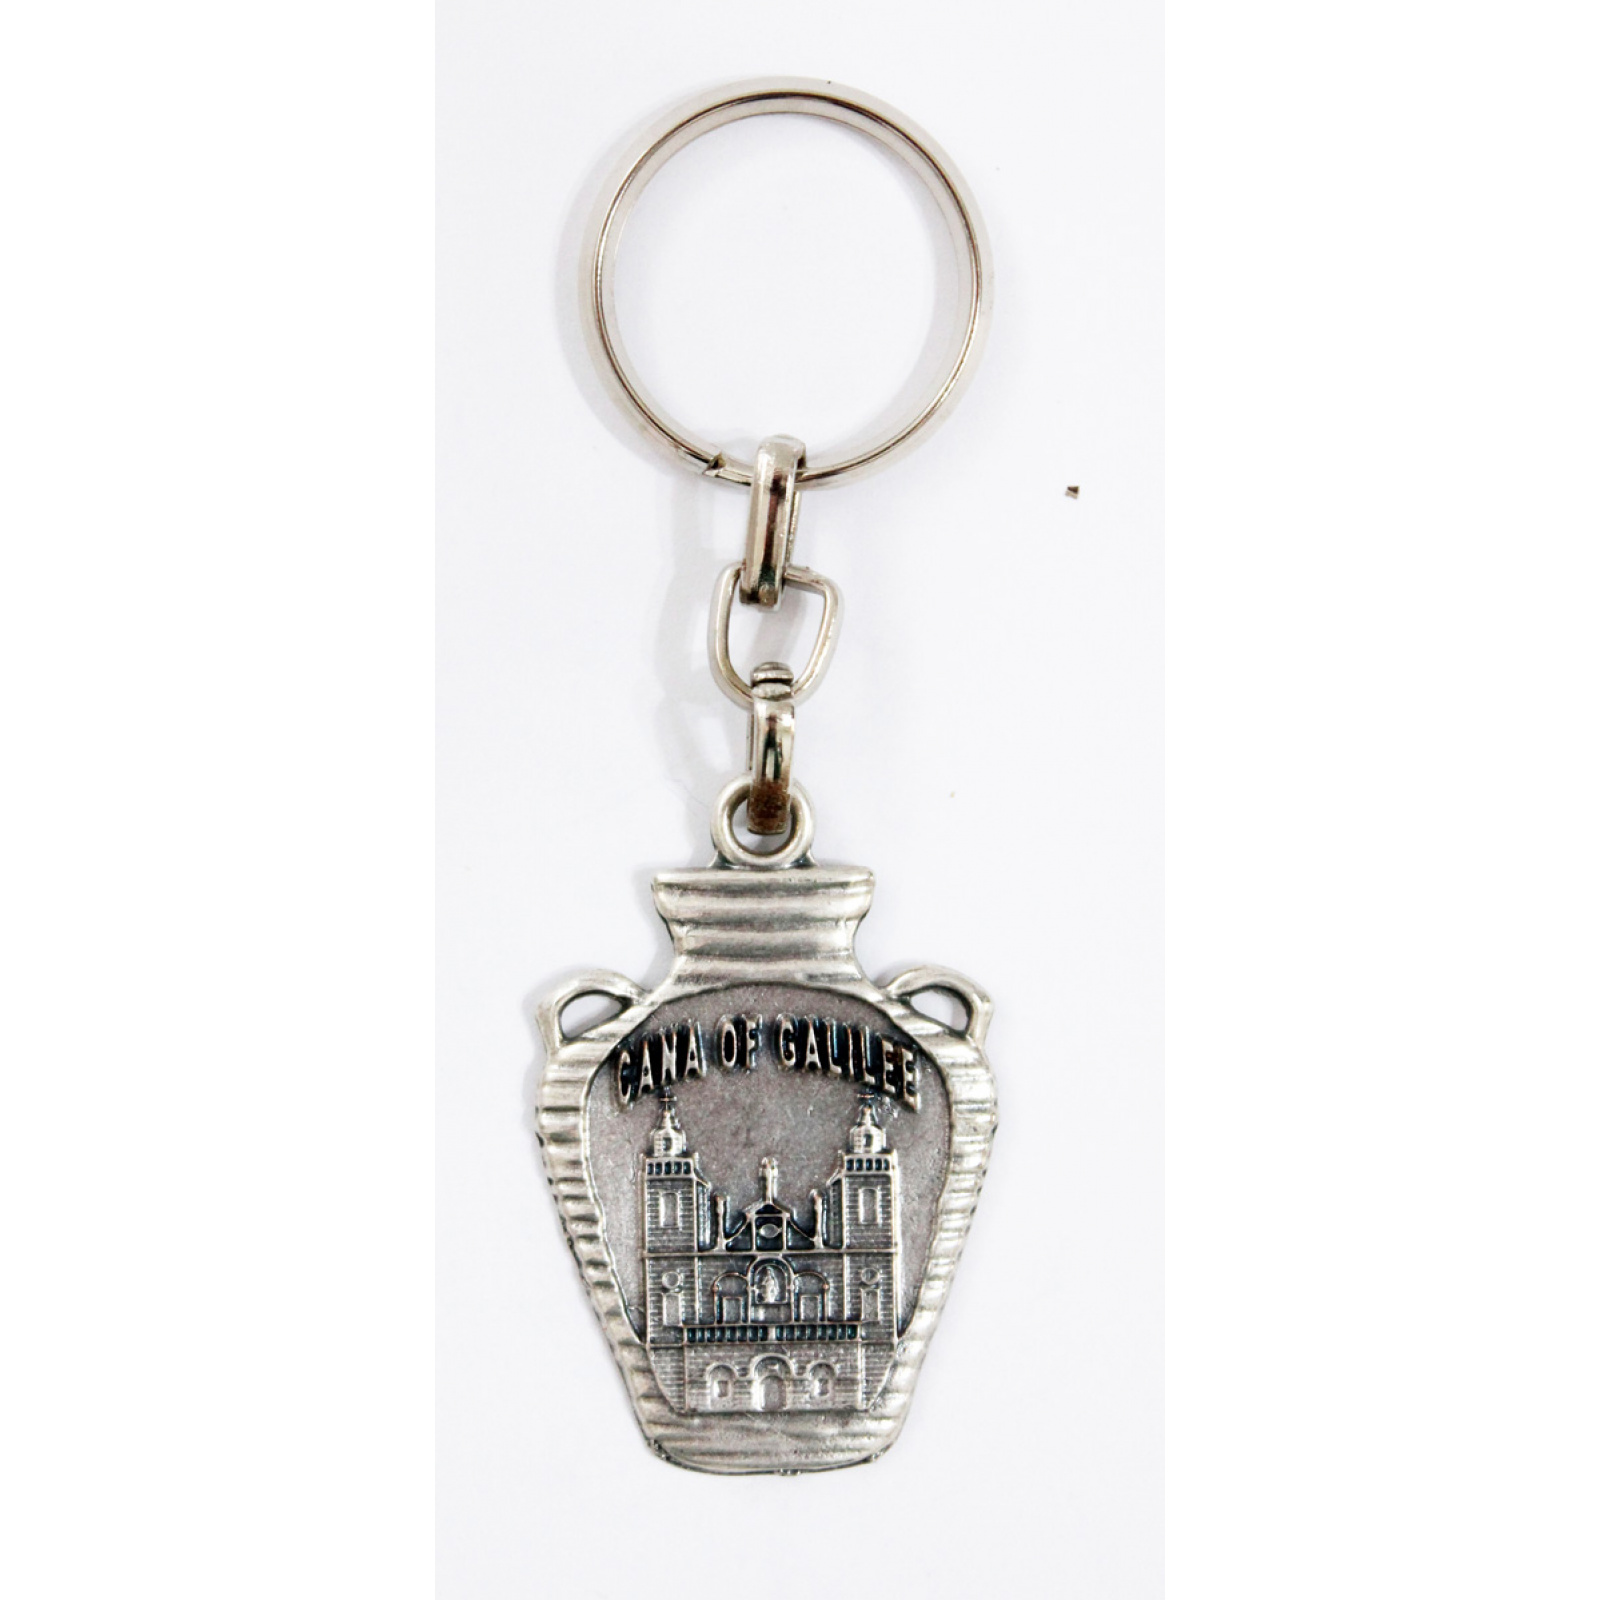 Cana of Galilee keychain